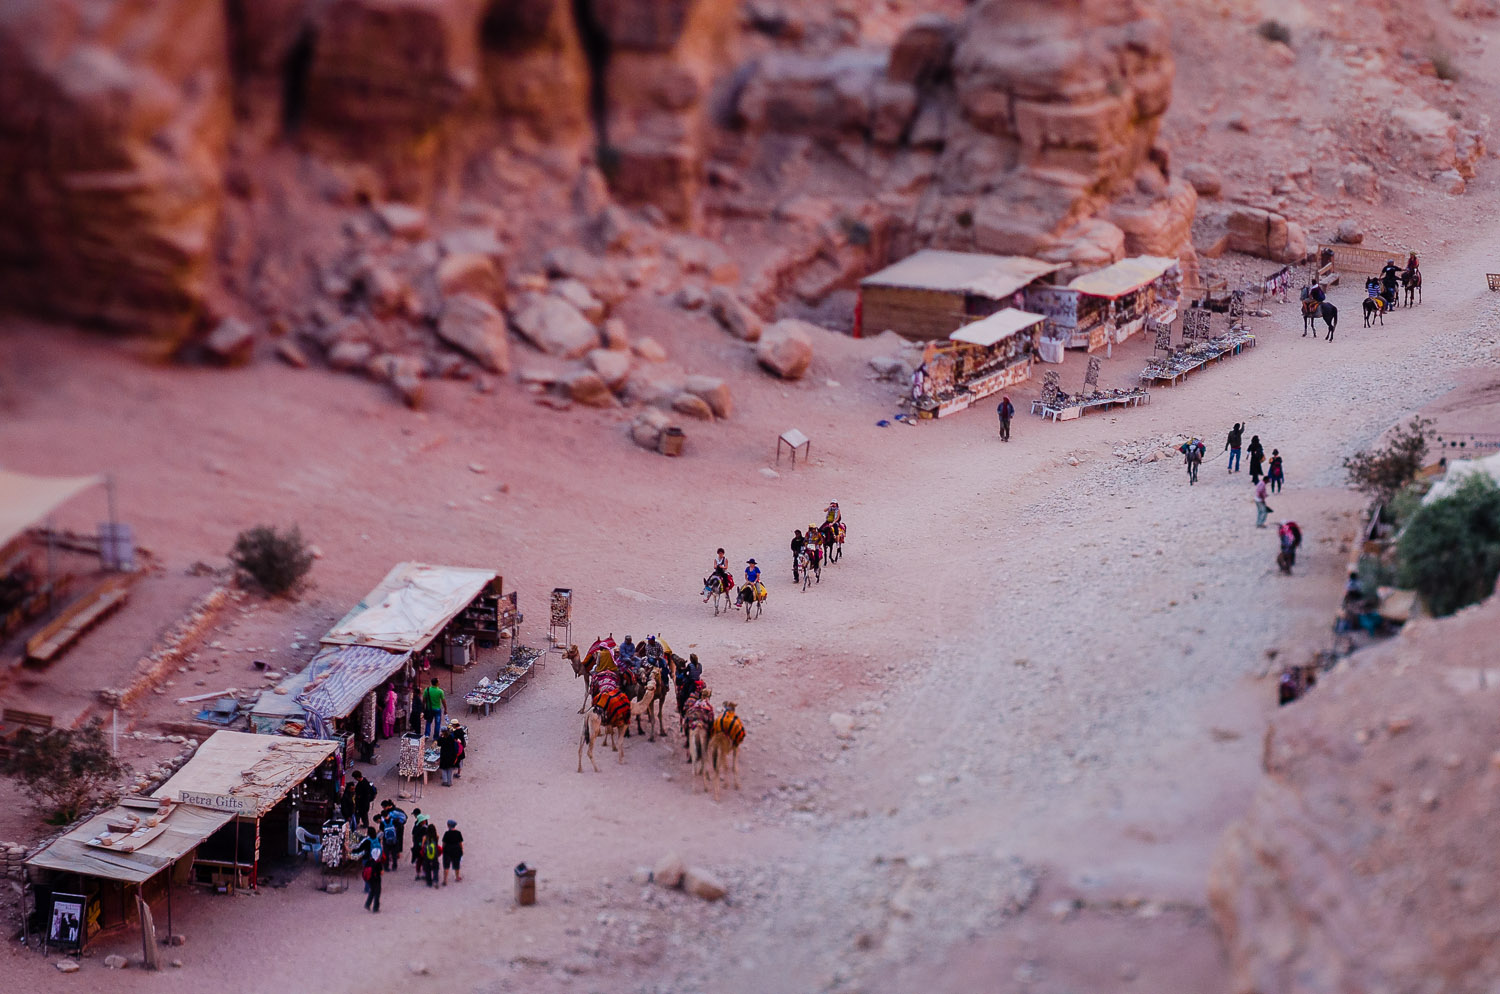 Looking down on Petra: The Pink City.  © Dustin Main 2013